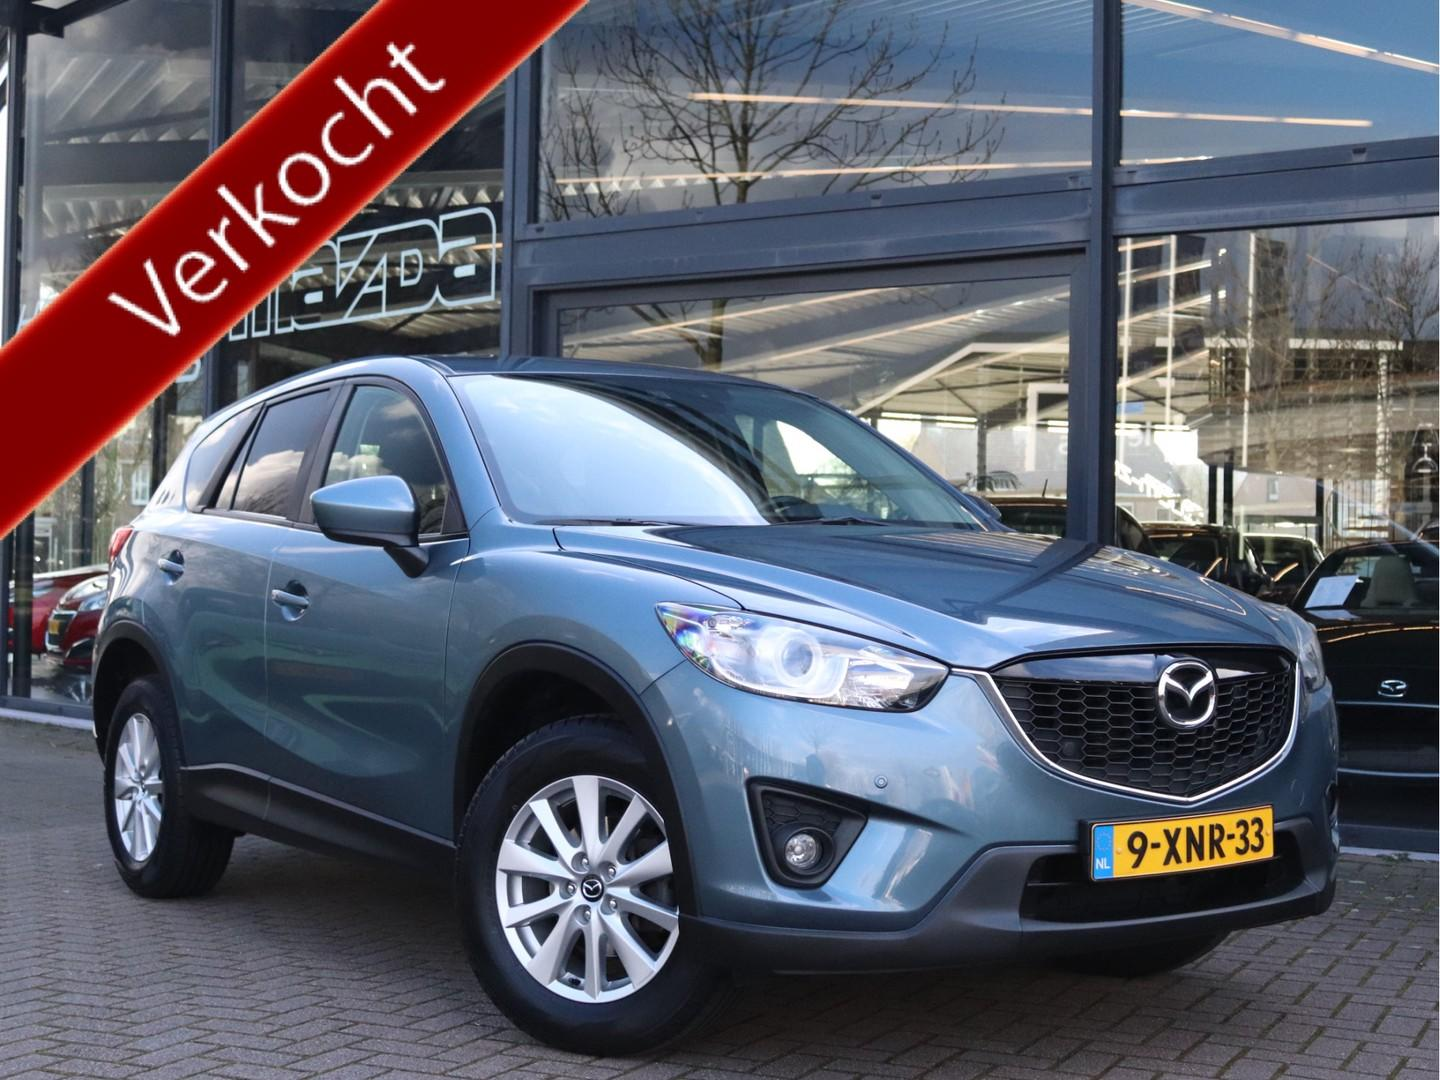 Mazda Cx-5 2.0i ts+ limited edition 2wd